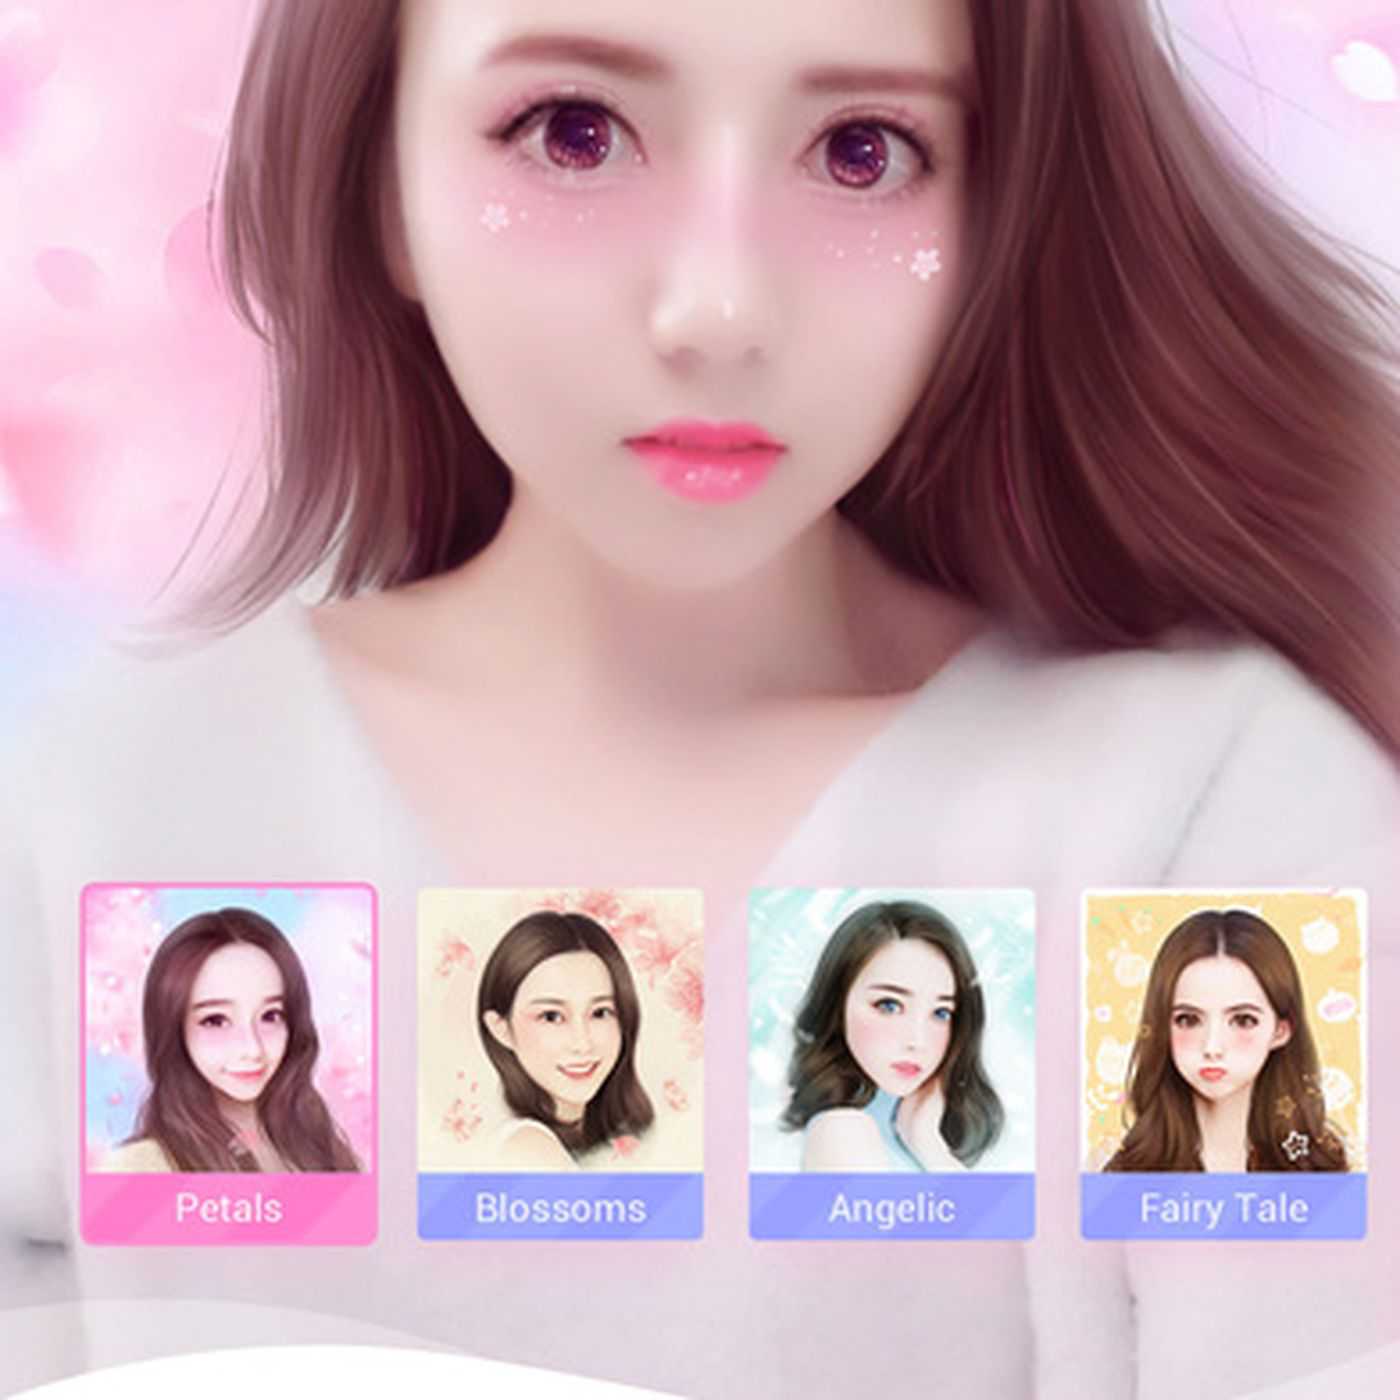 What is Meitu and should you think twice before downloading